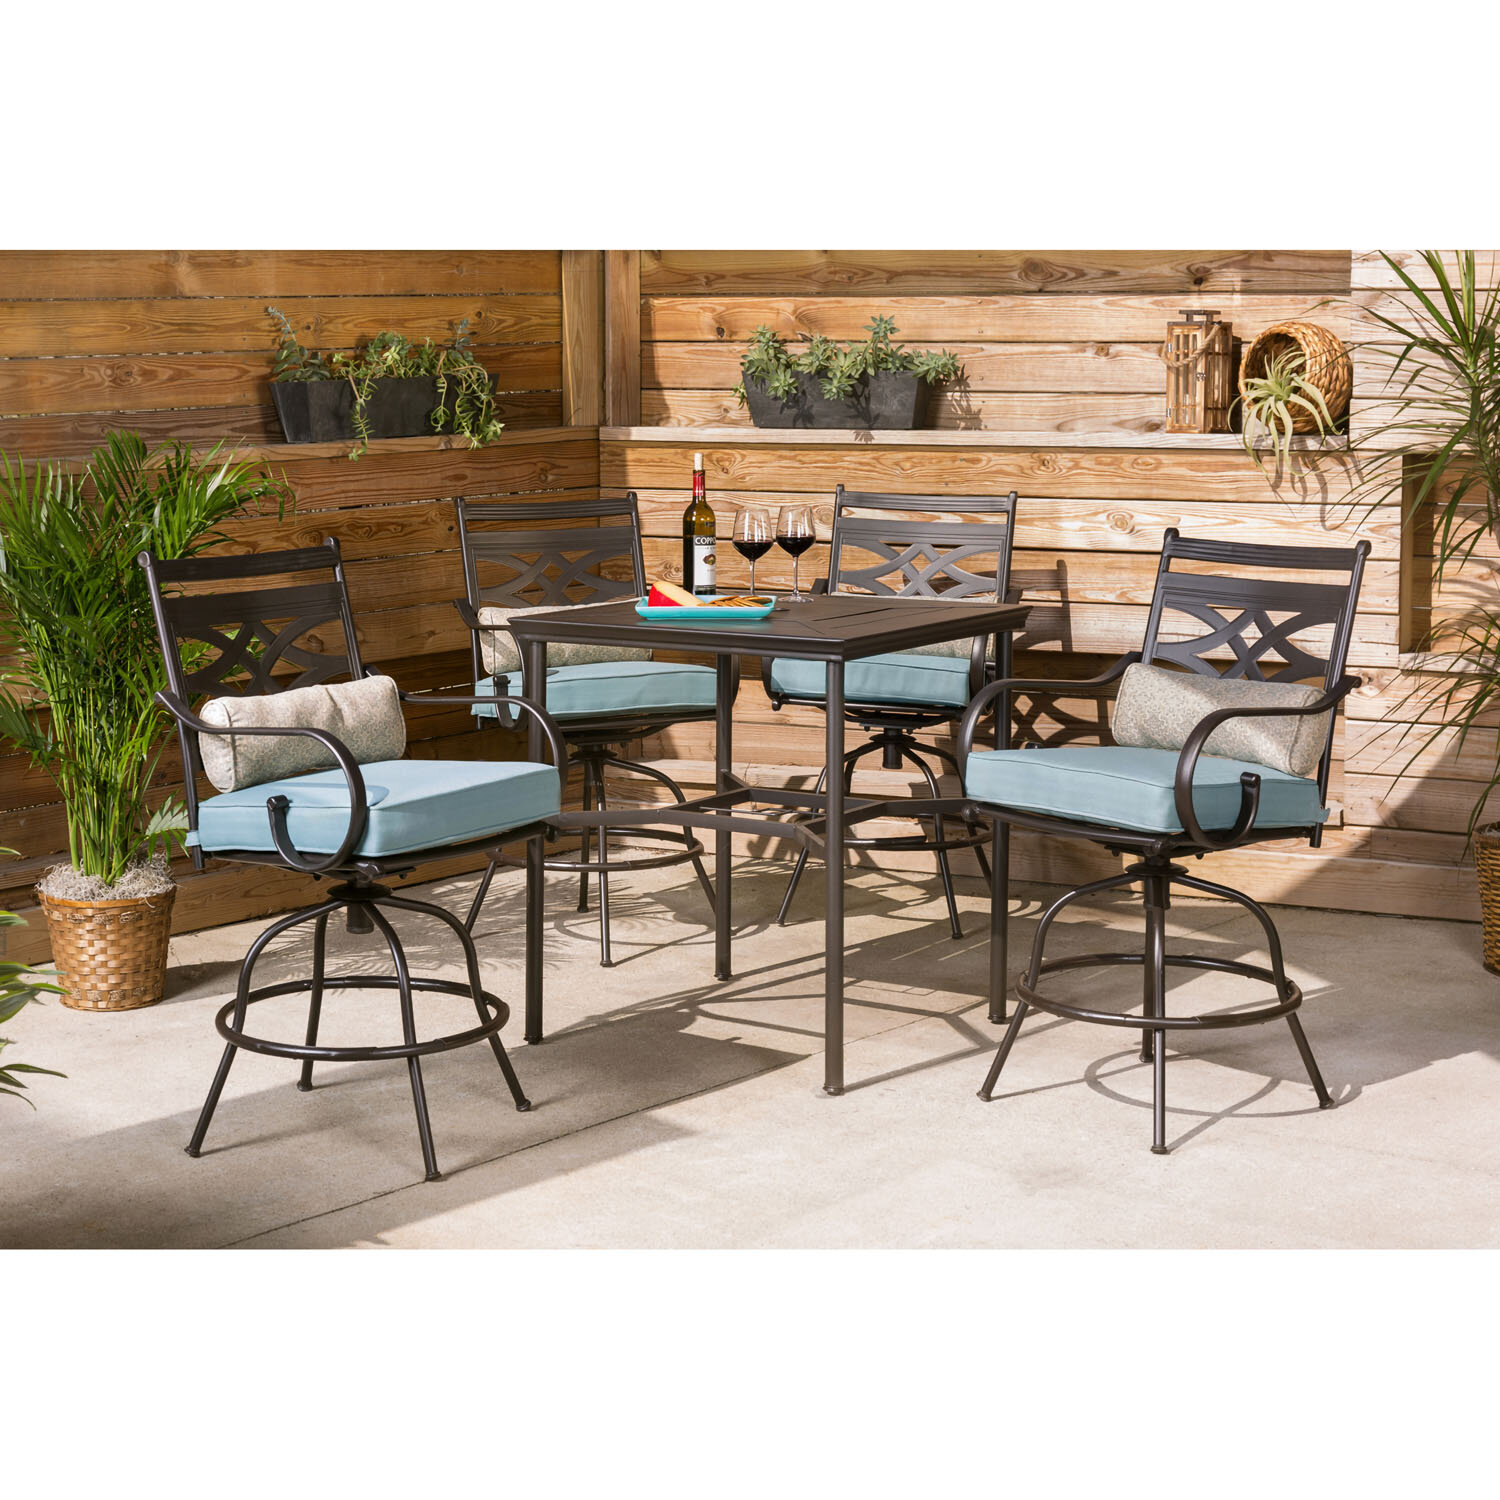 Charlton Home Gehlert 5 Piece Bar Height Dining Set With Cushions Wayfair